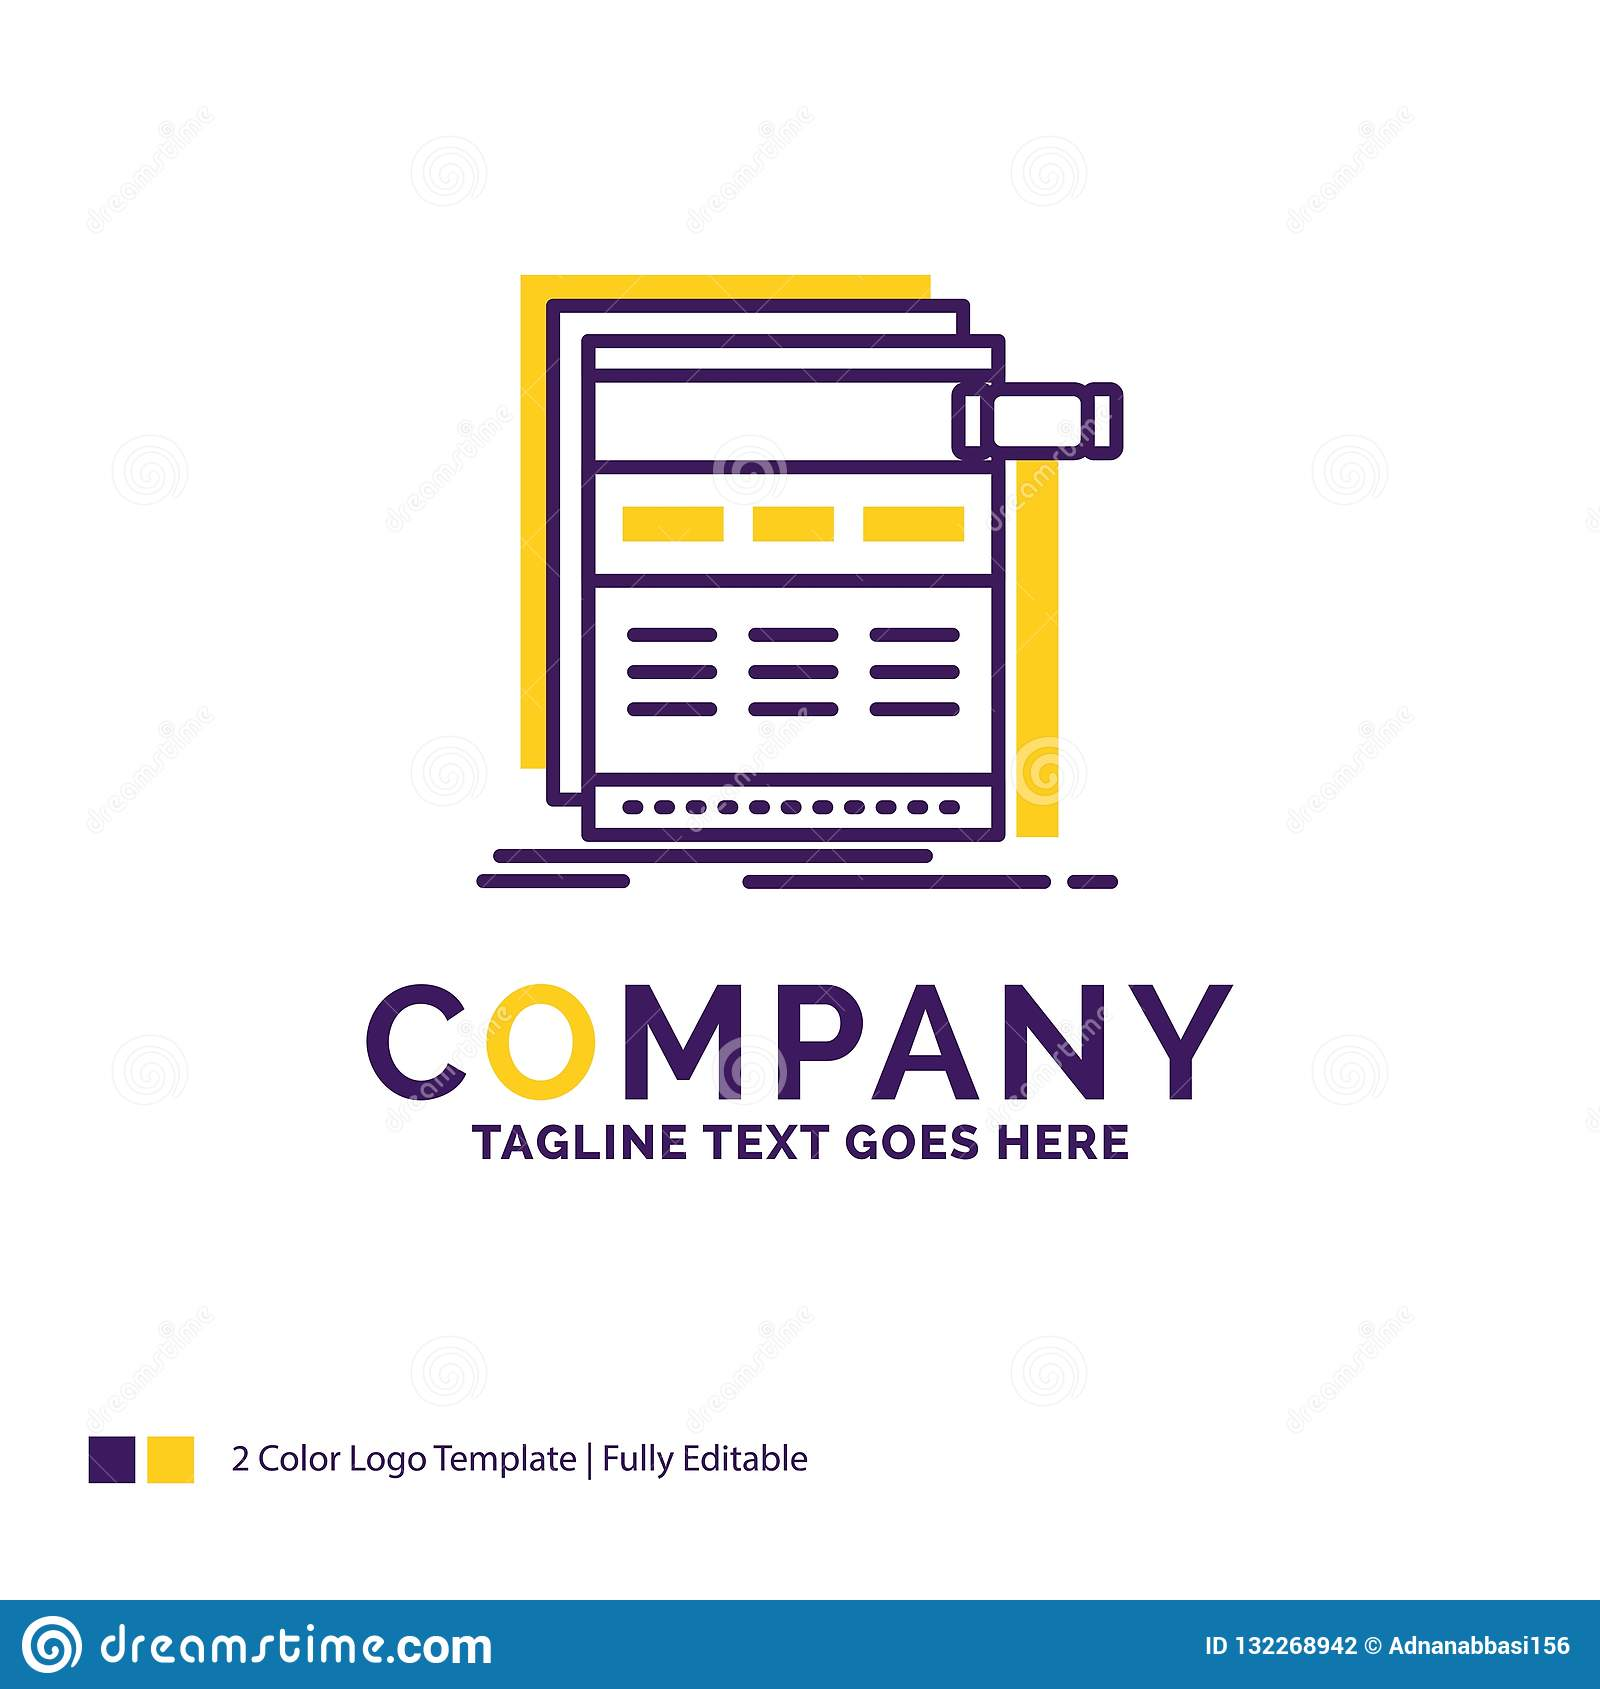 Company Name Logo Design For Internet, page, web, webpage, wiref